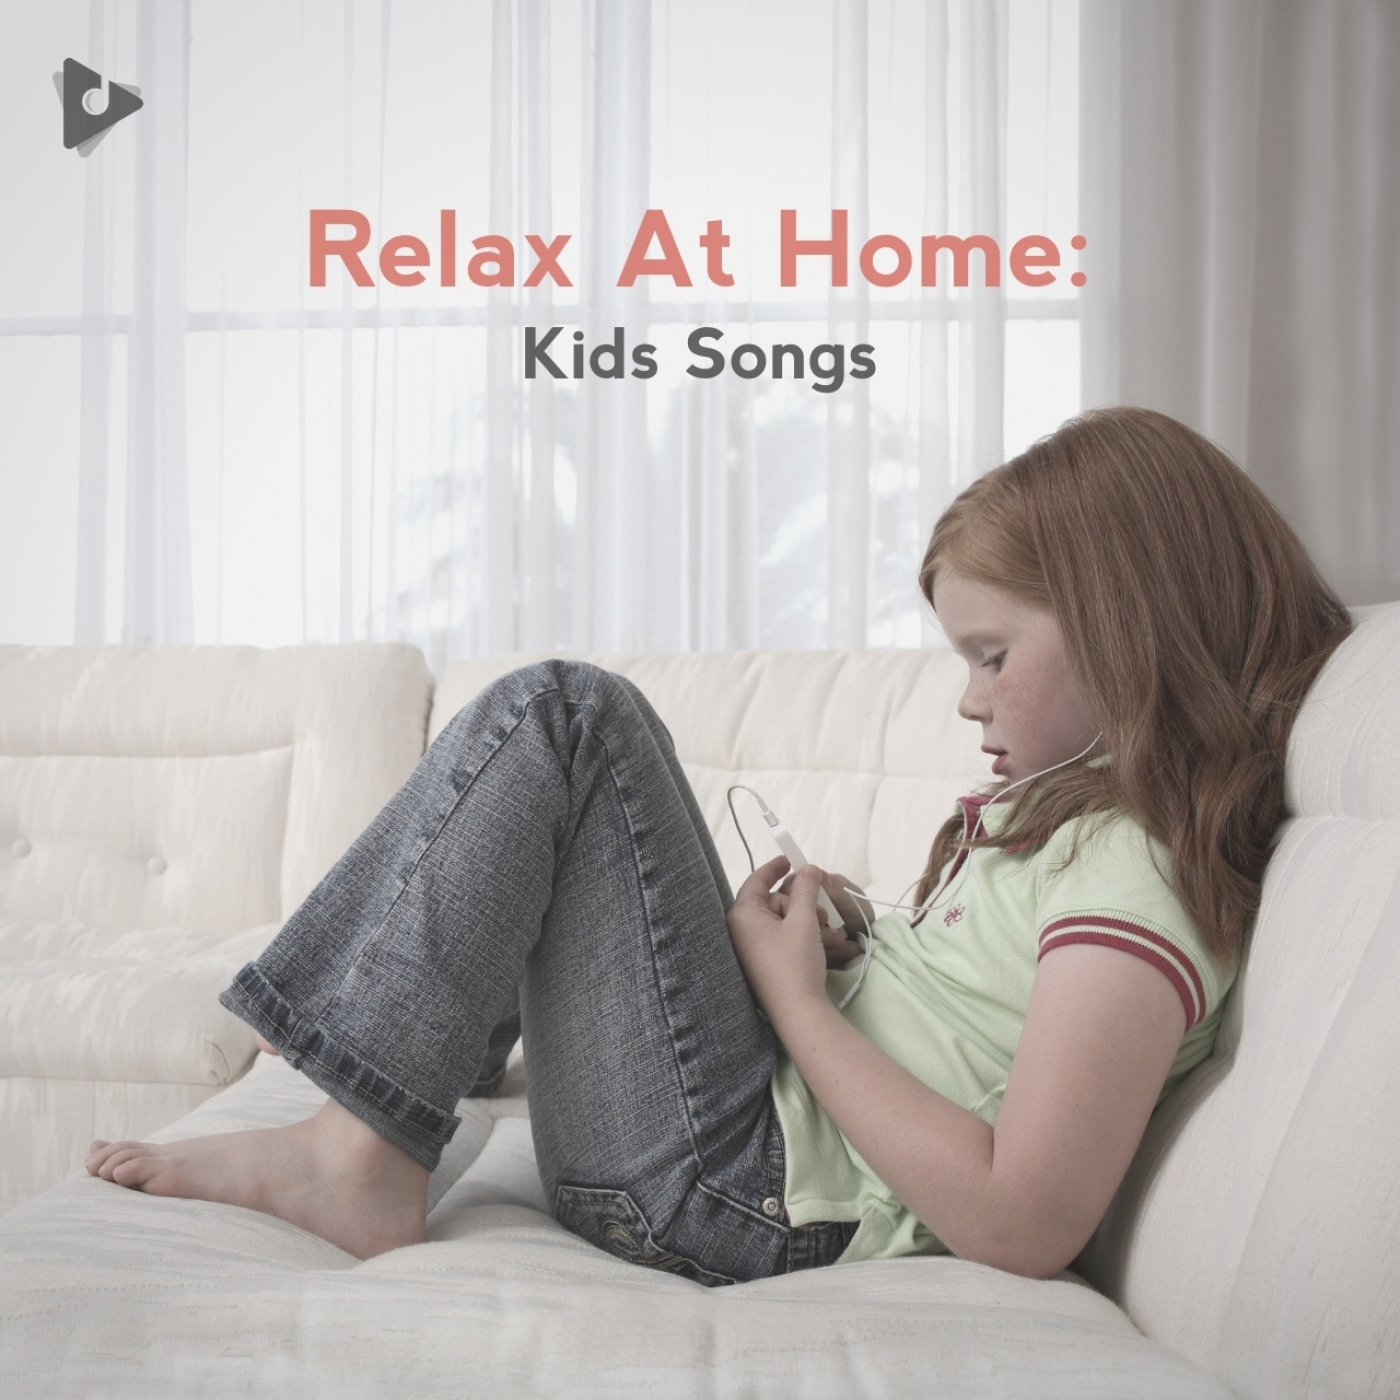 Stay-at-Home: Kids Songs